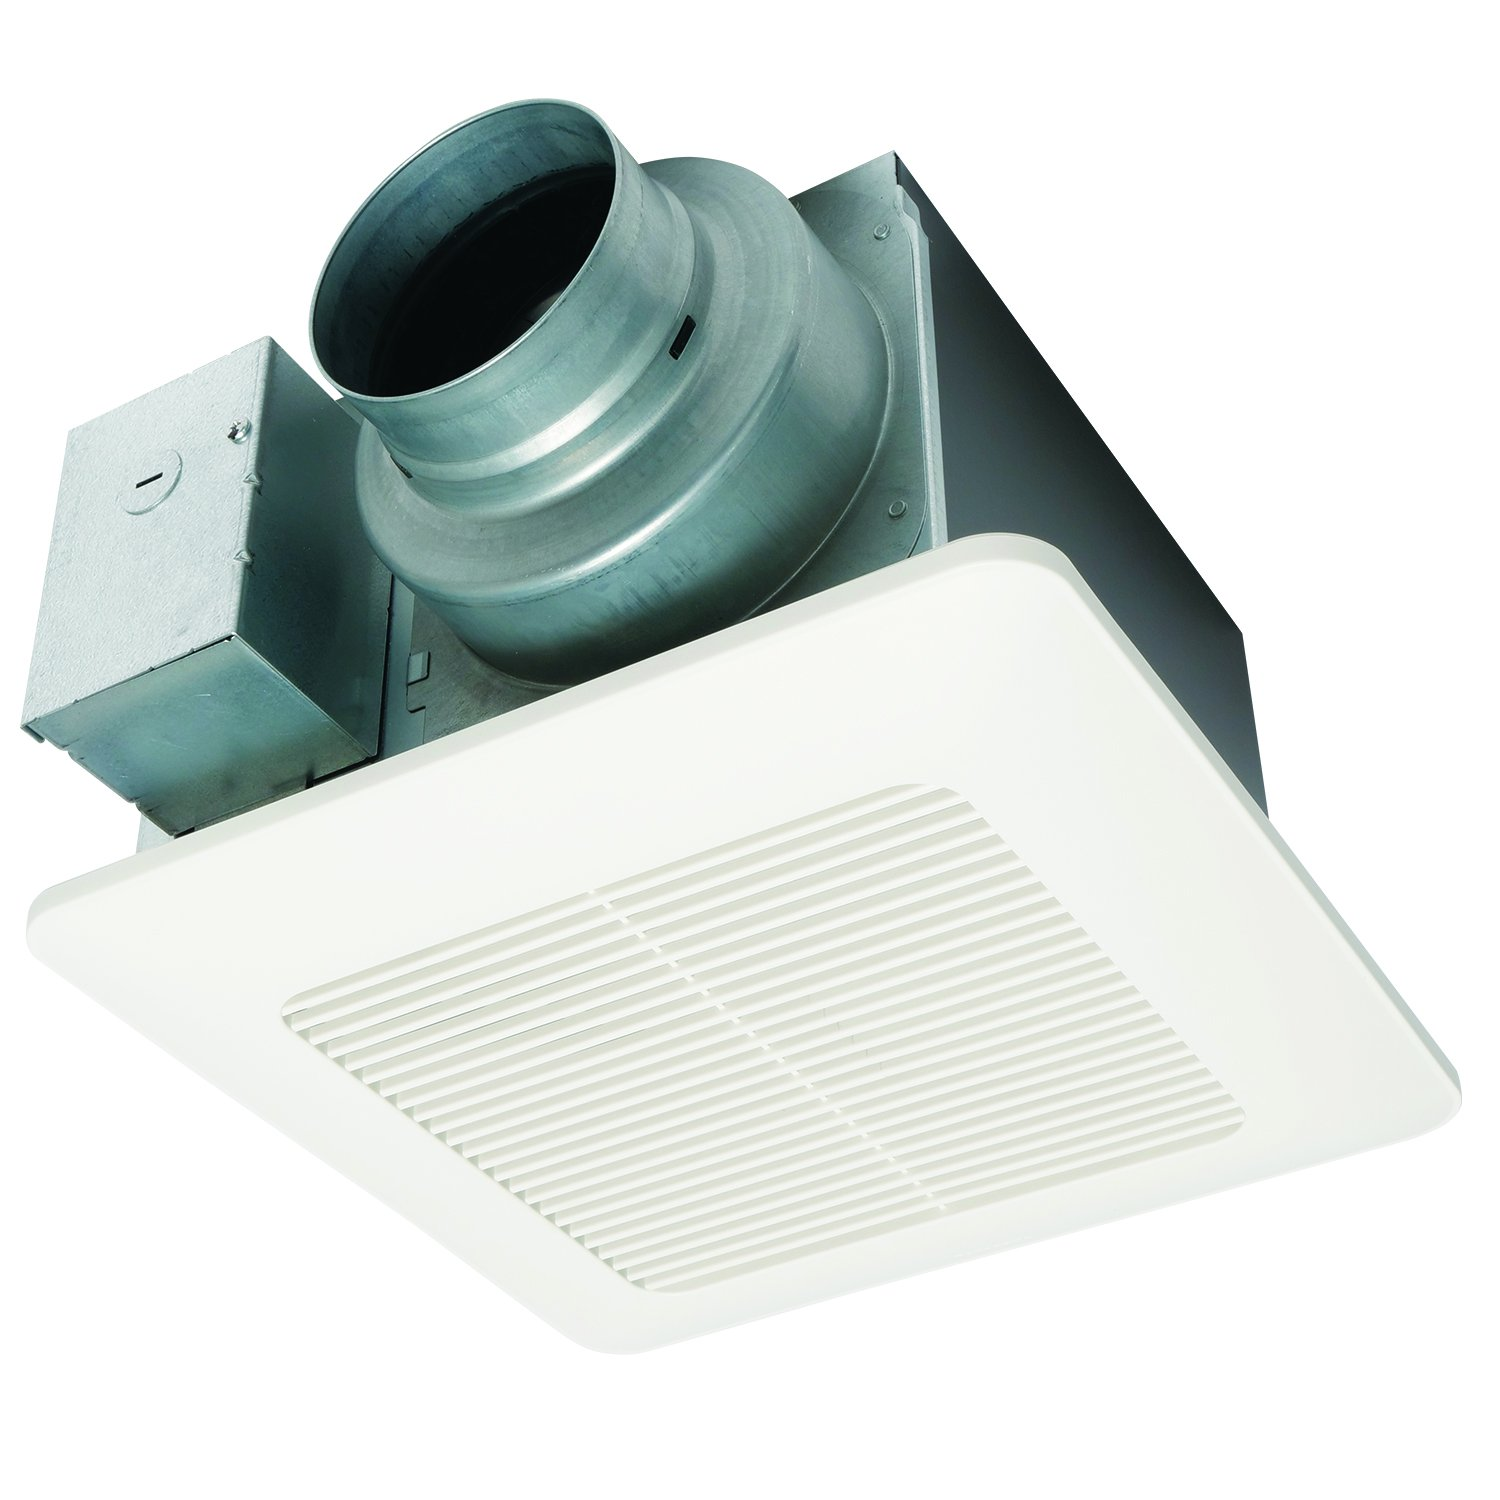 Panasonic Fv 11vq5 Whisperceiling 110 Cfm Ceiling Mounted Fan White And Light To Gfci Wiring Diagram Built In Household Ventilation Fans